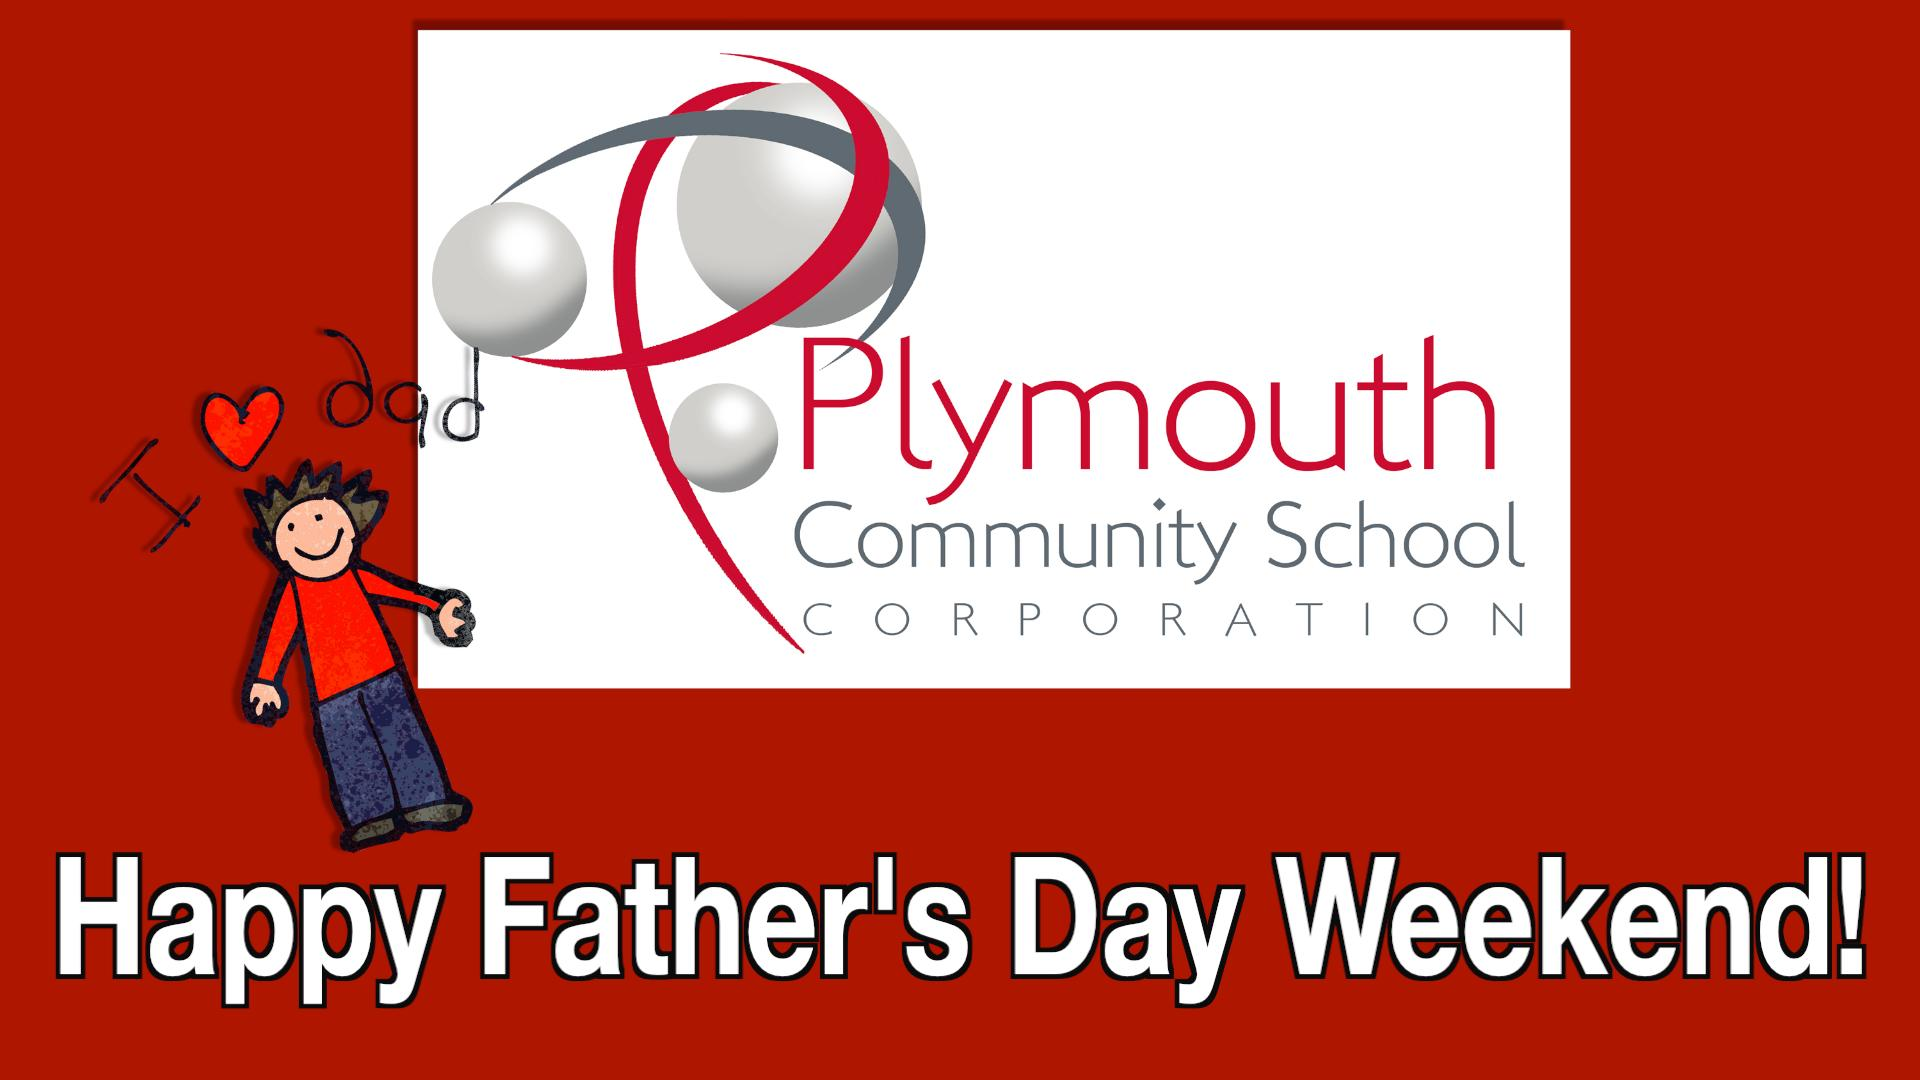 Plymouth Community School Corporation Logo, a I love dad image with kid on red background - Happy Father's Day Weekend!